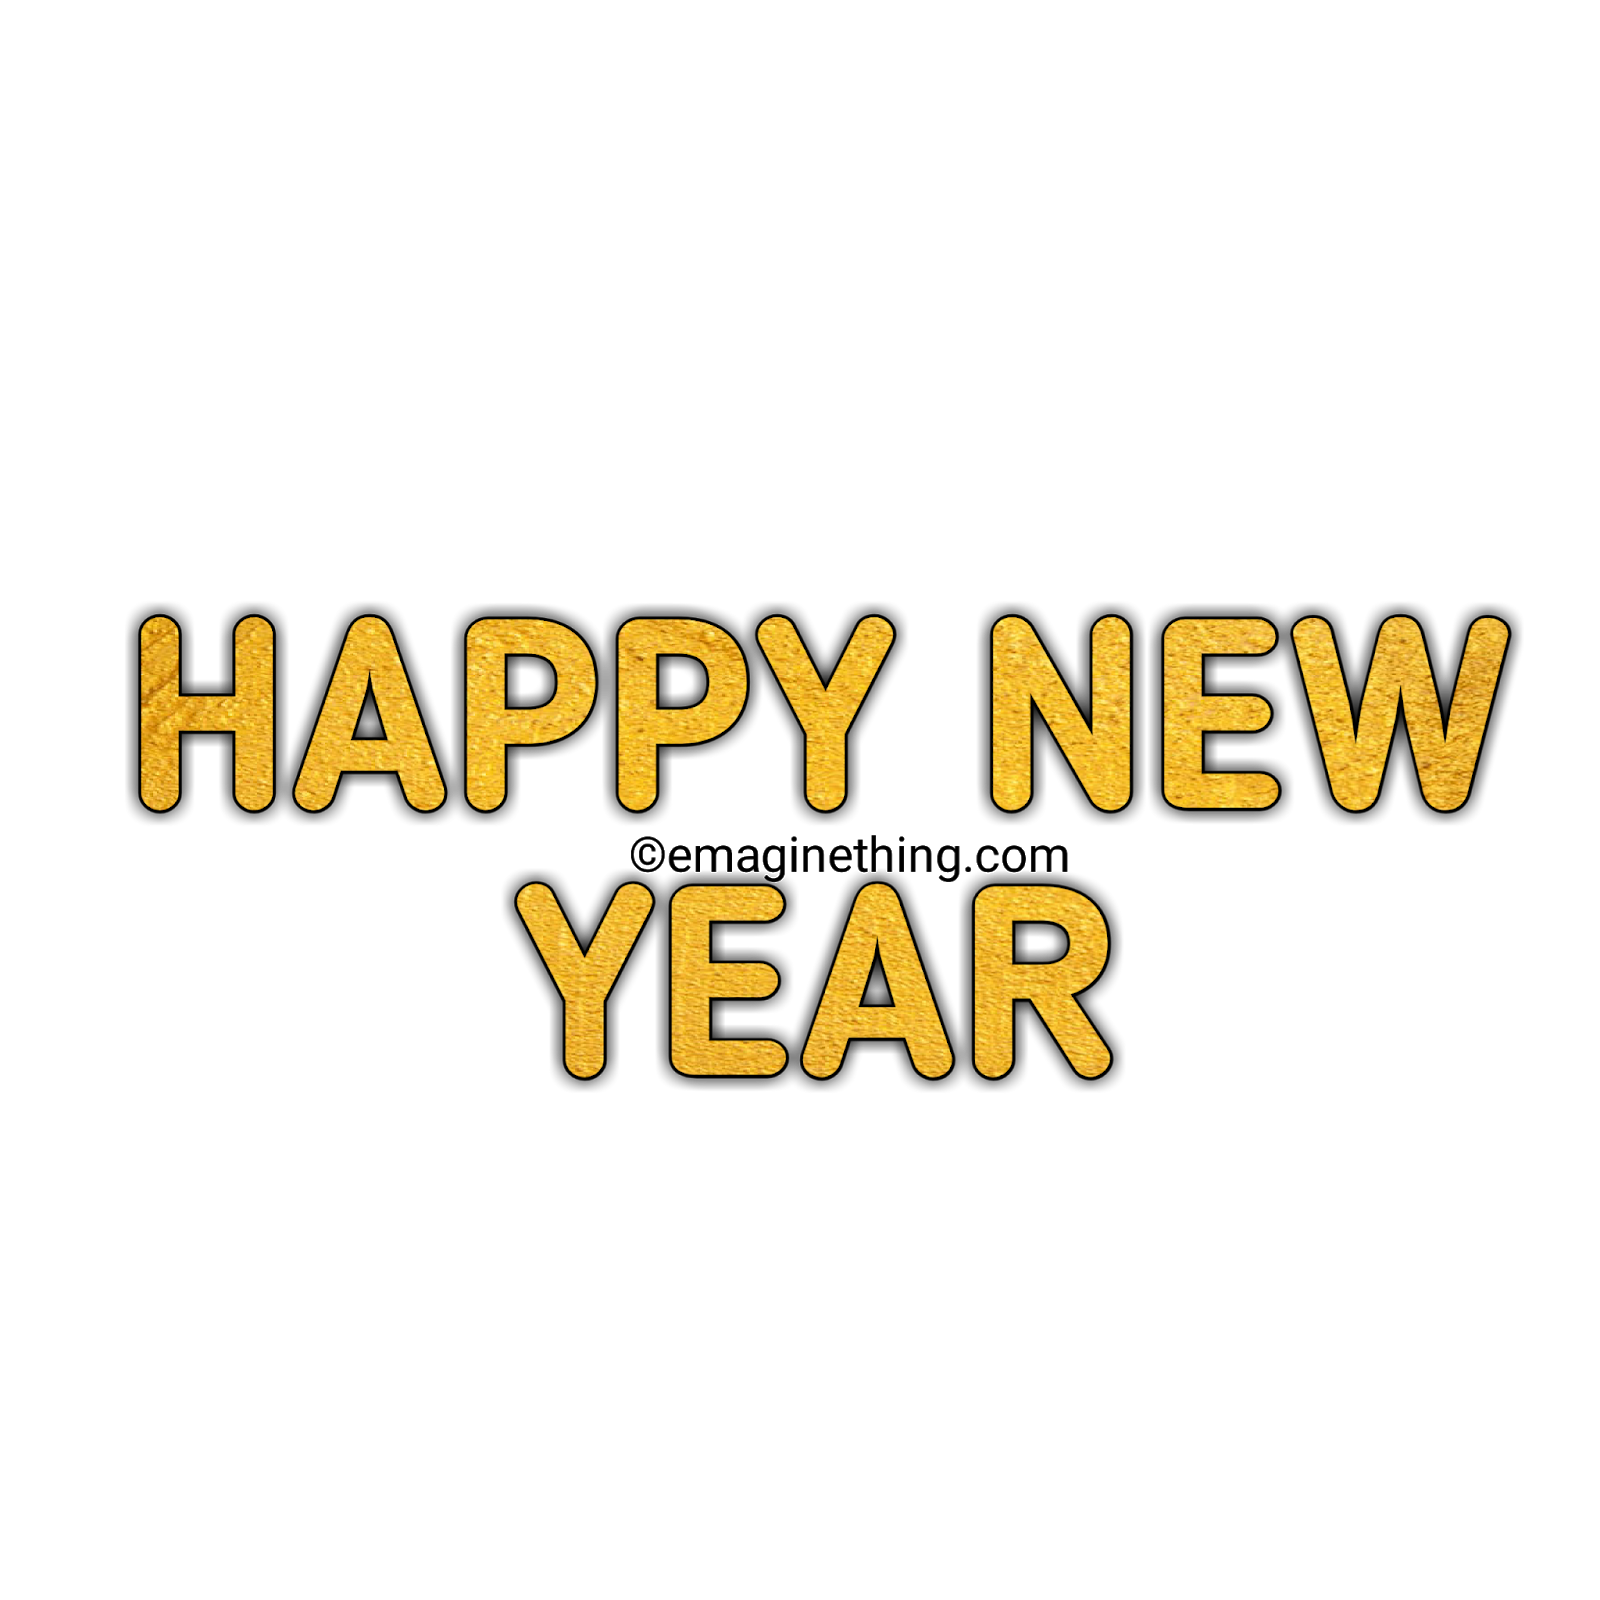 happy new year text png 2019 whatsapp stickerdownload